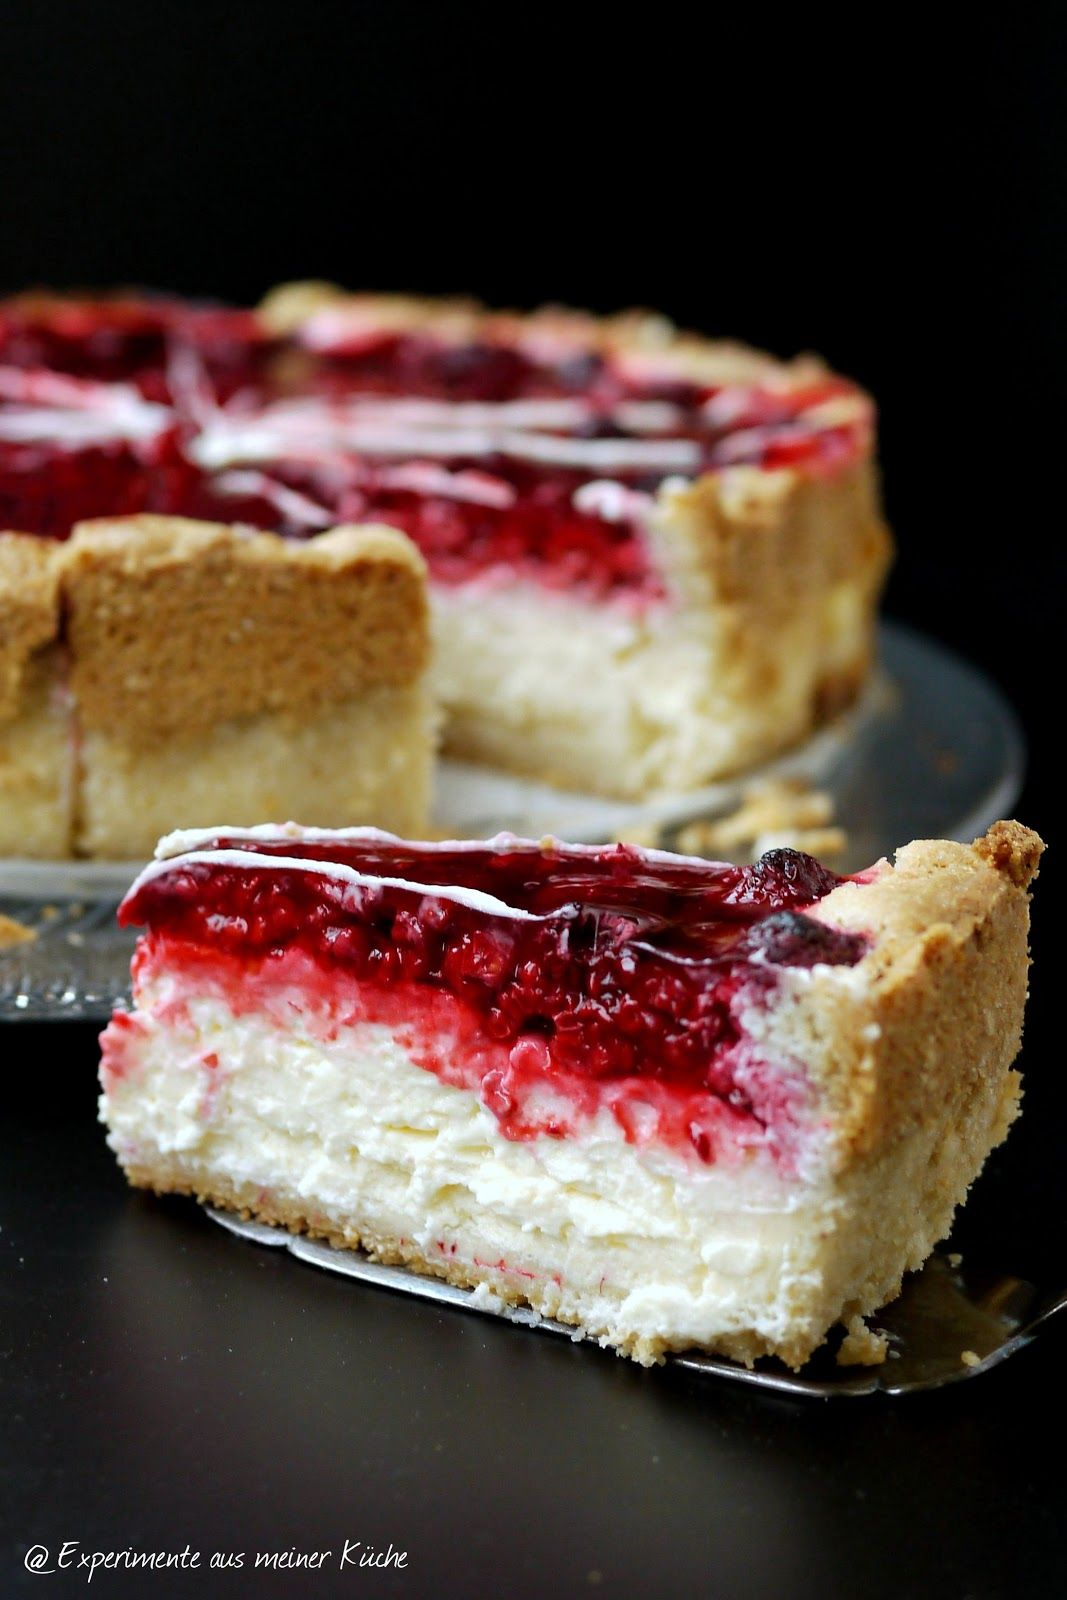 Schokopudding Kuchen Pudding Schmand Kuchen Mit Himbeeren In 2019 Baking Backen